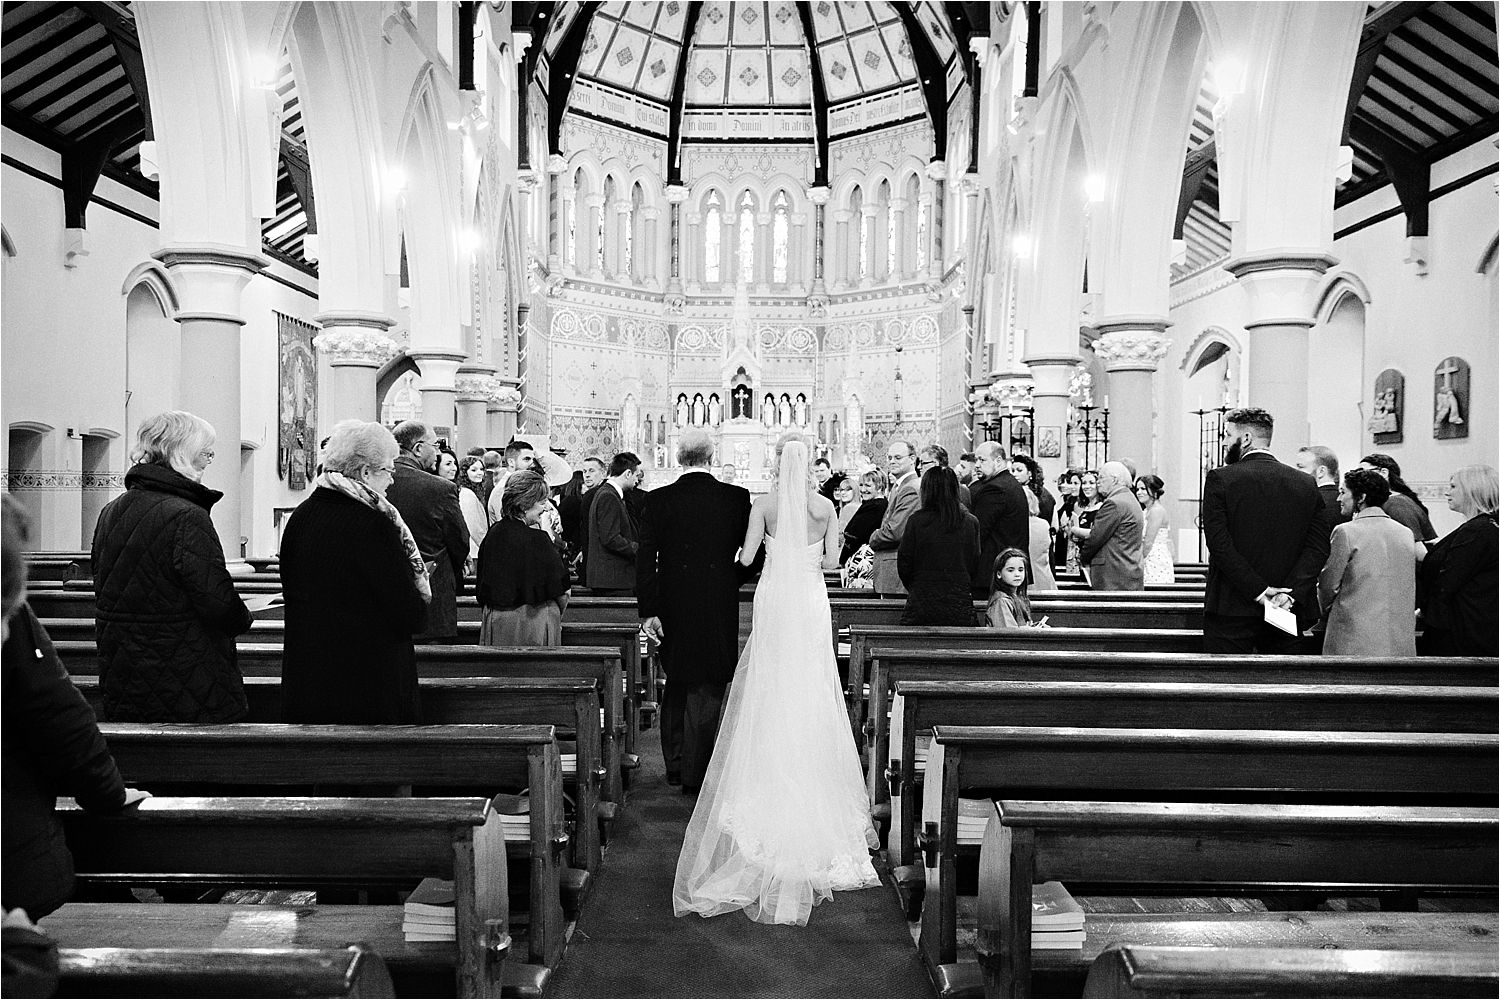 The bride and her father walk down the aisle in Cumbrian church.